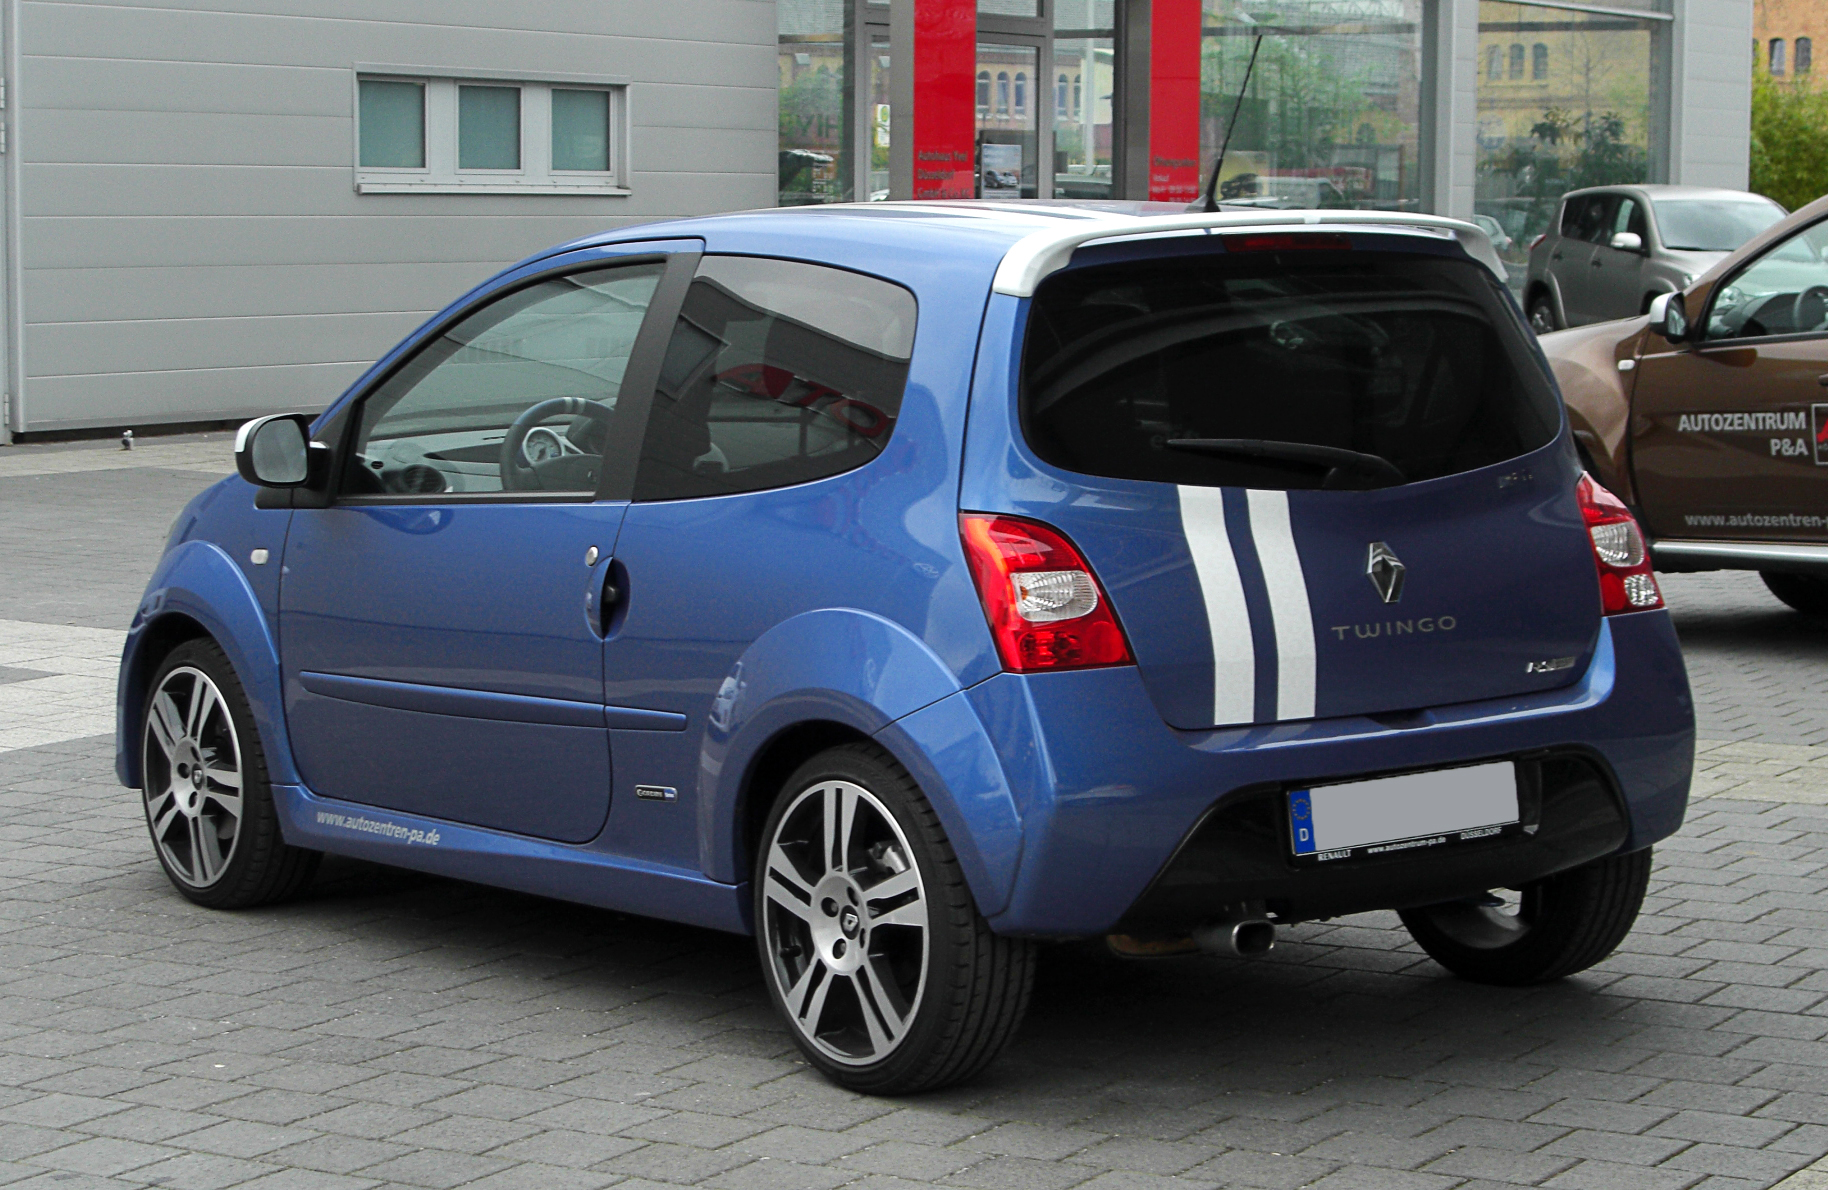 file renault twingo gordini rs ii heckansicht 26 m rz 2011 d wikimedia commons. Black Bedroom Furniture Sets. Home Design Ideas